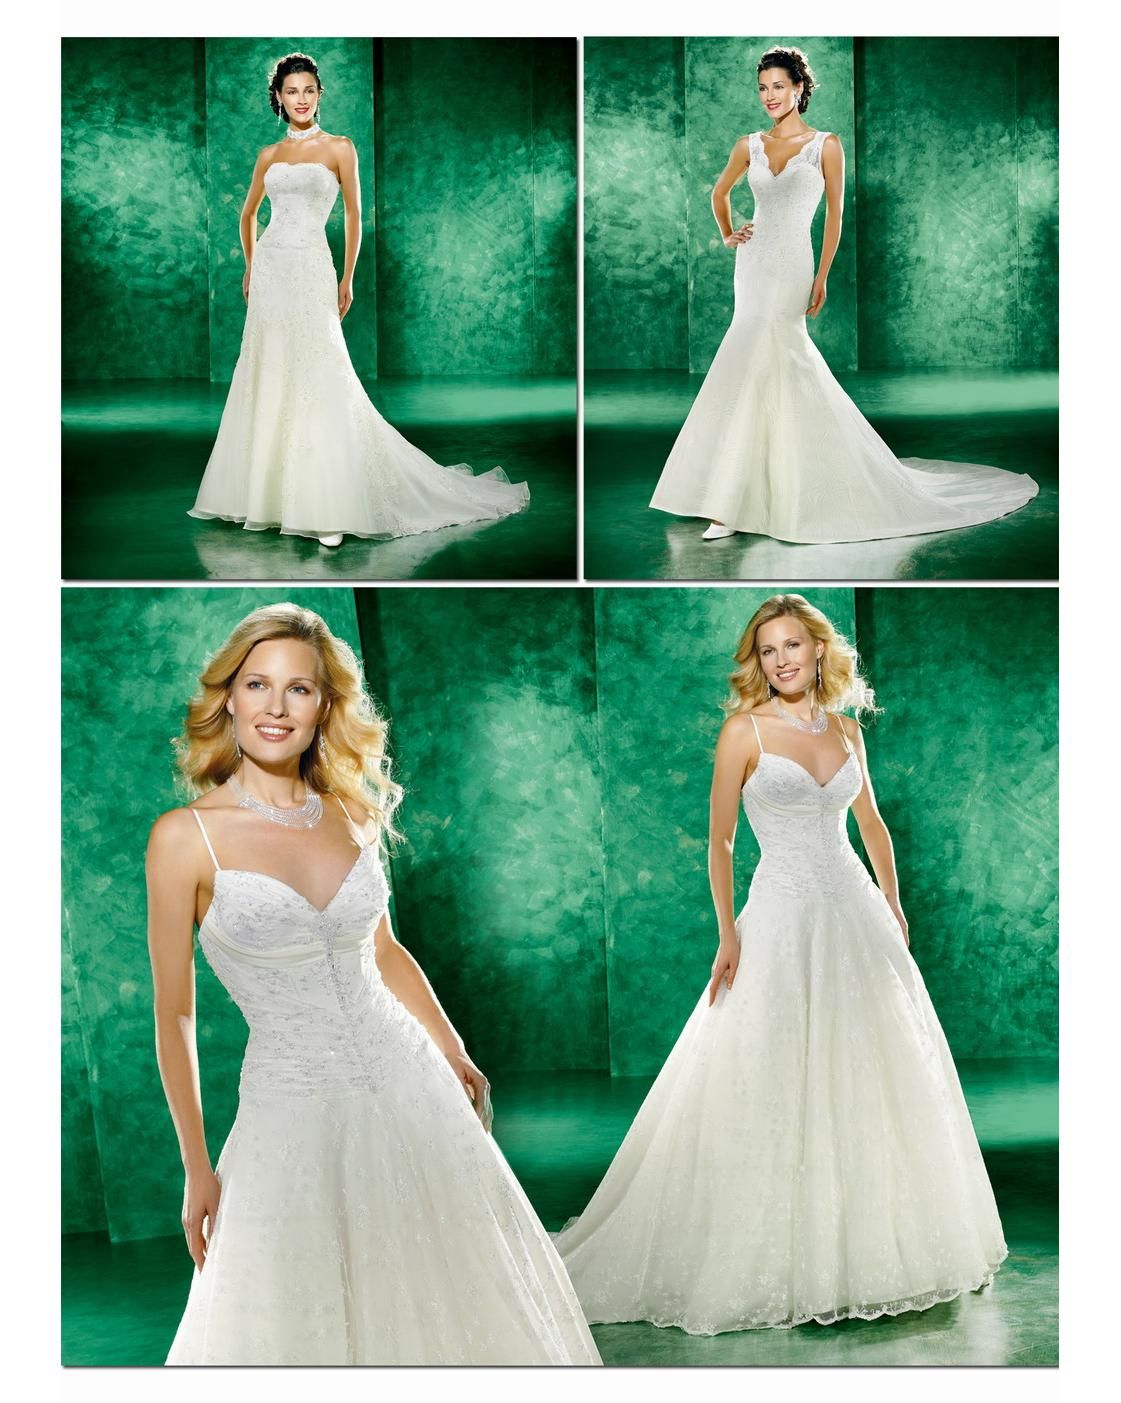 Cream colored wedding dresses with beautiful top designs